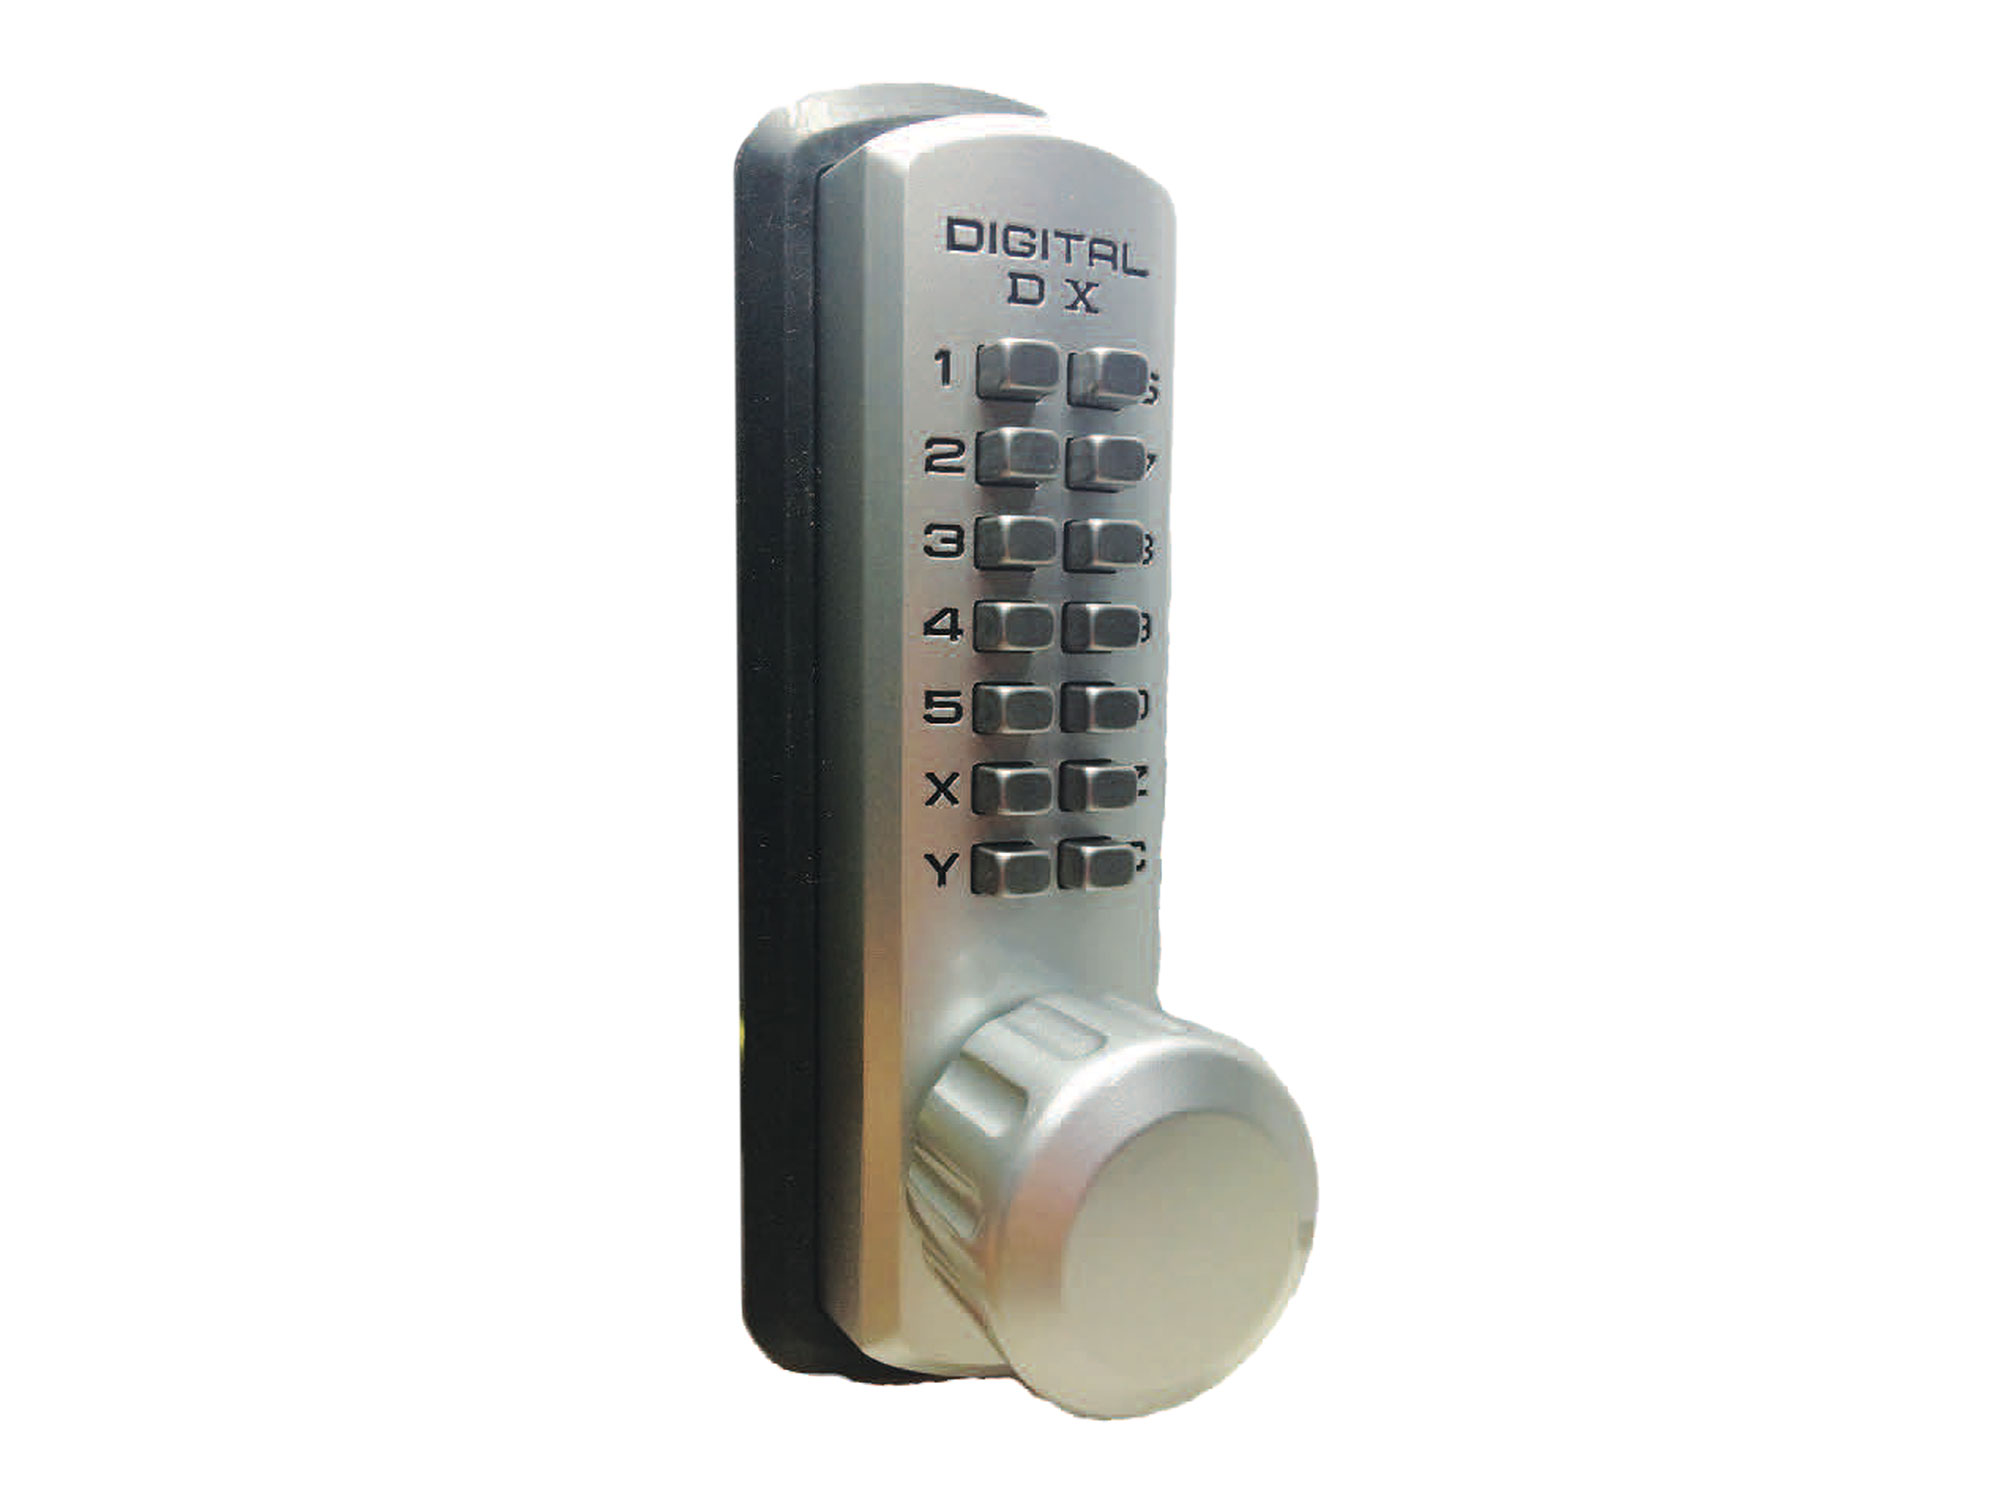 Lockey 310P Marine-Grade Heavy-Duty Panic-Bar Keypad Lock